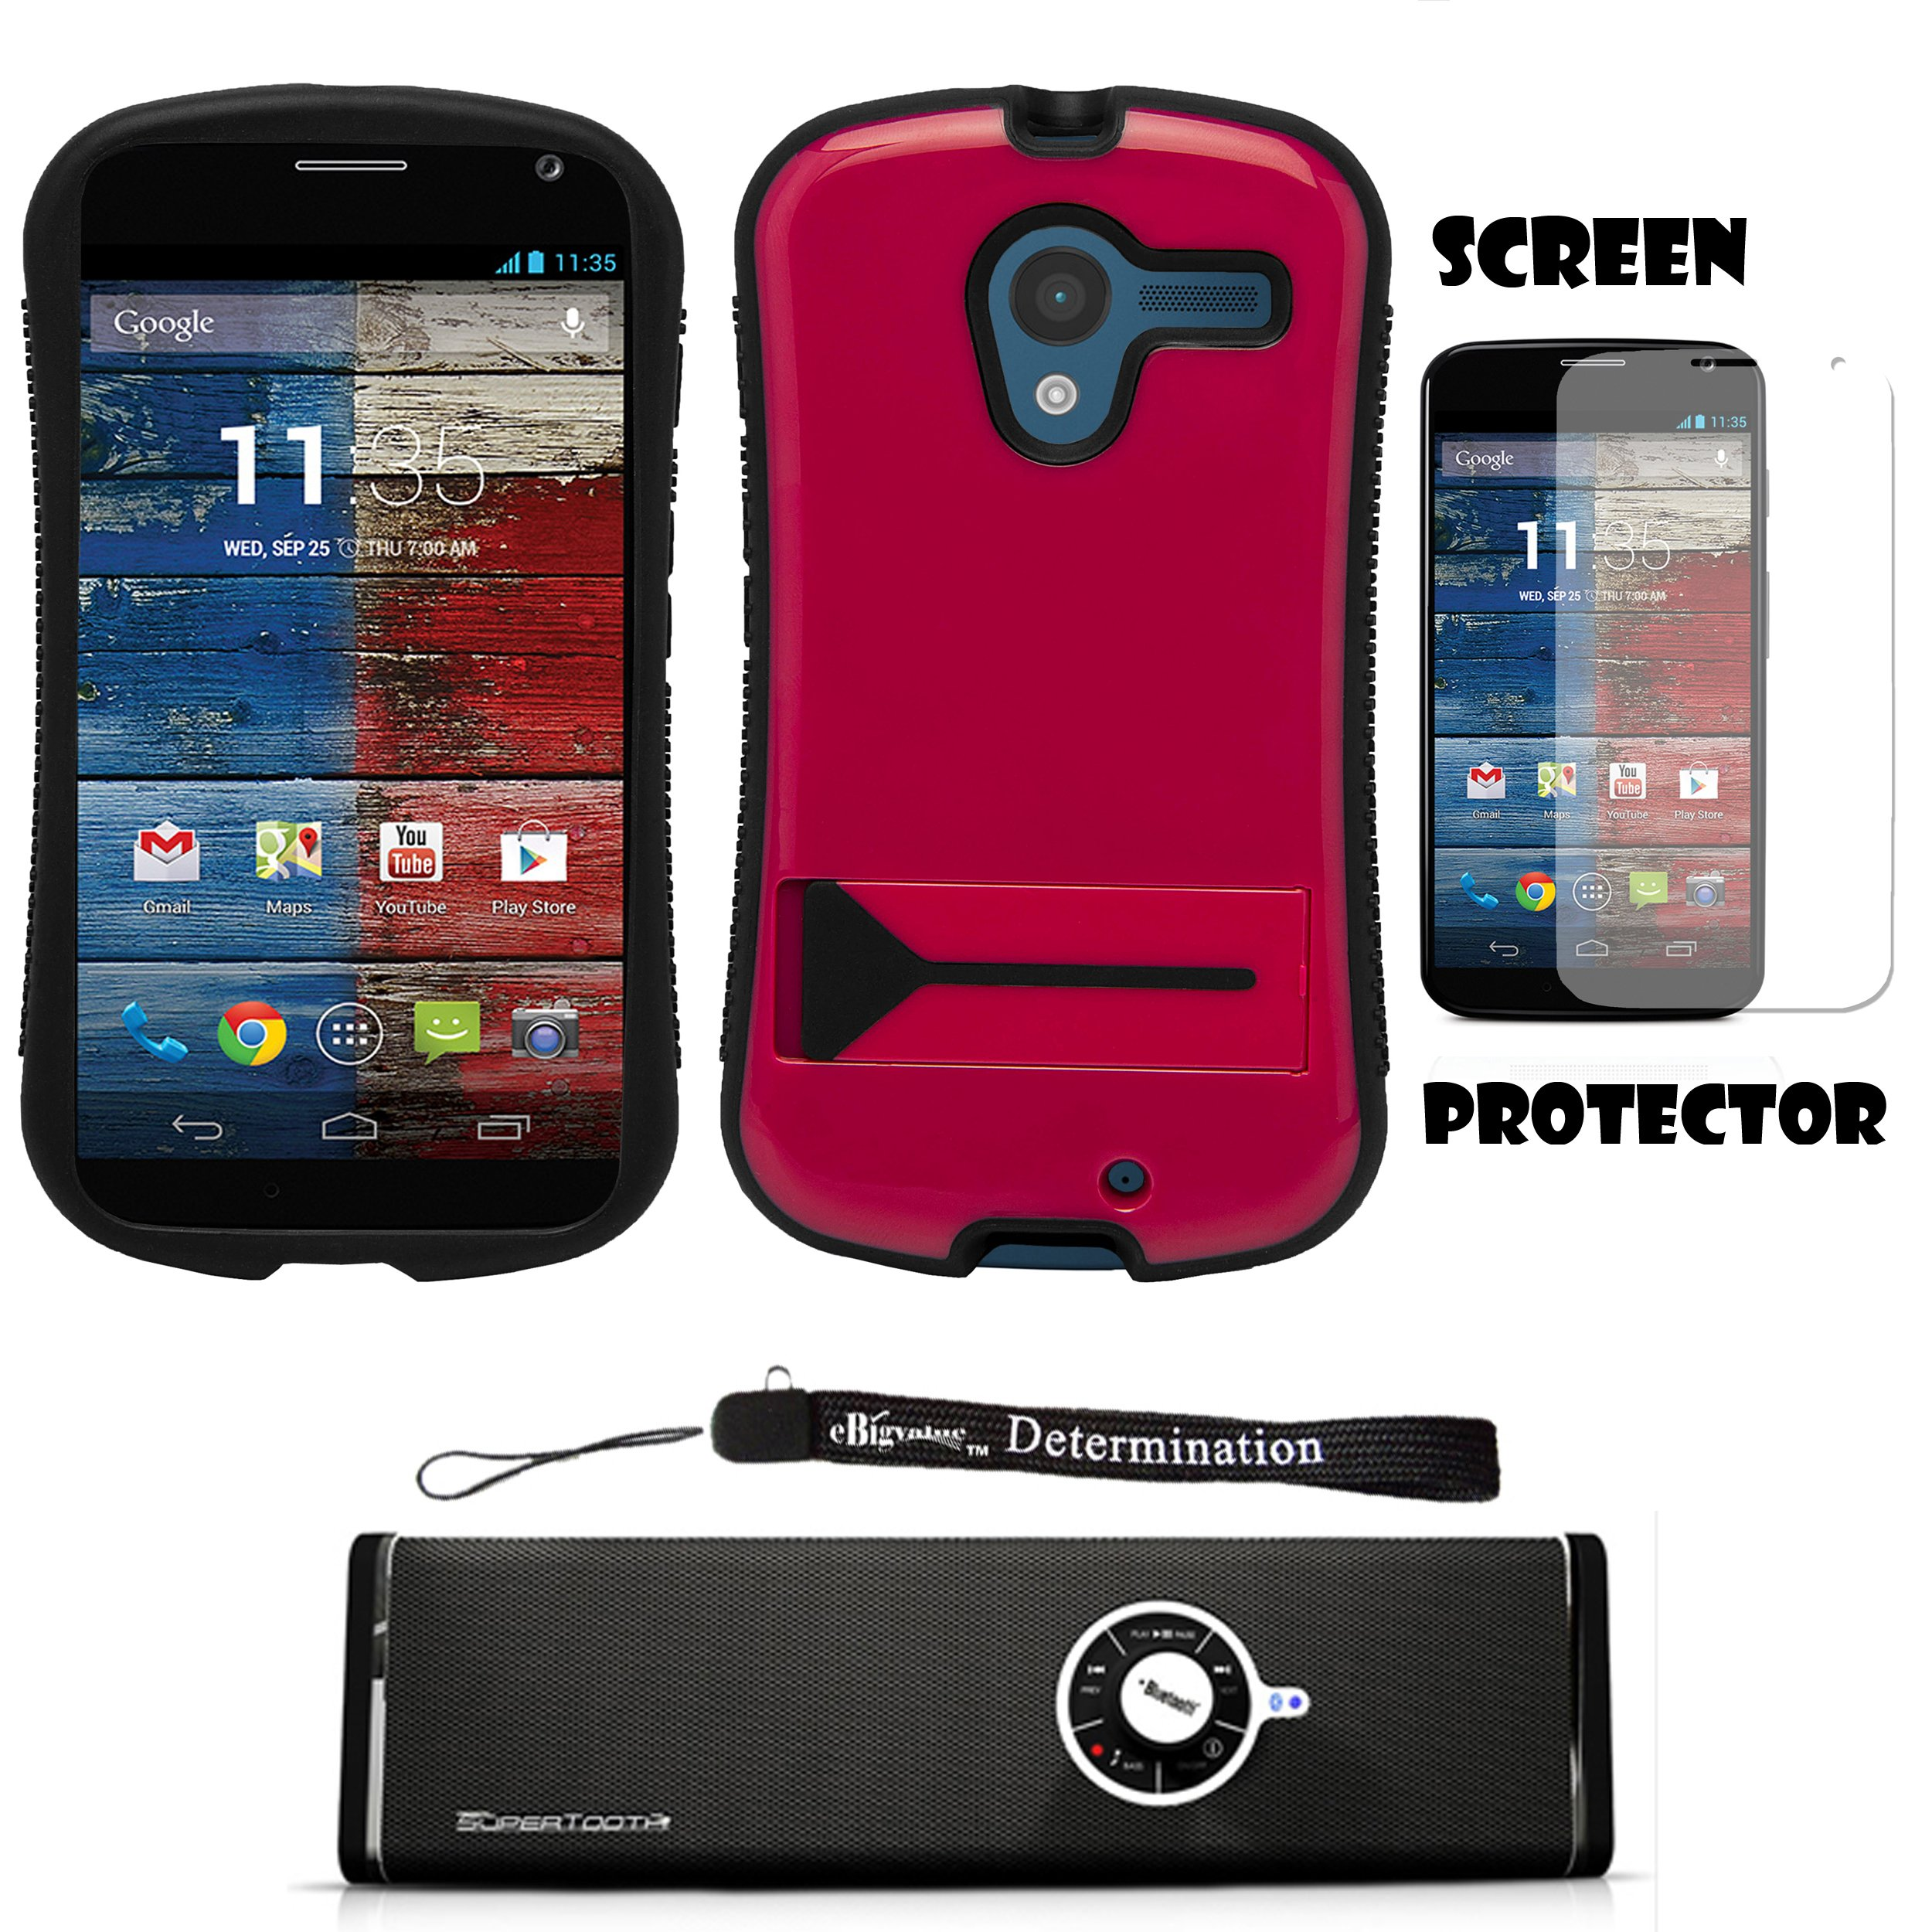 Magenta Hybrid Tough Protective Shield Cover Case with Kick Stand For Motorola Moto X Android OS V4 2.2 (Jelly Bean) + Motorola Moto X Clear Screen Protector + Supertooth Disco Bluetooth Speaker with AUX Cable + an eBigValue Determination Hand Strap